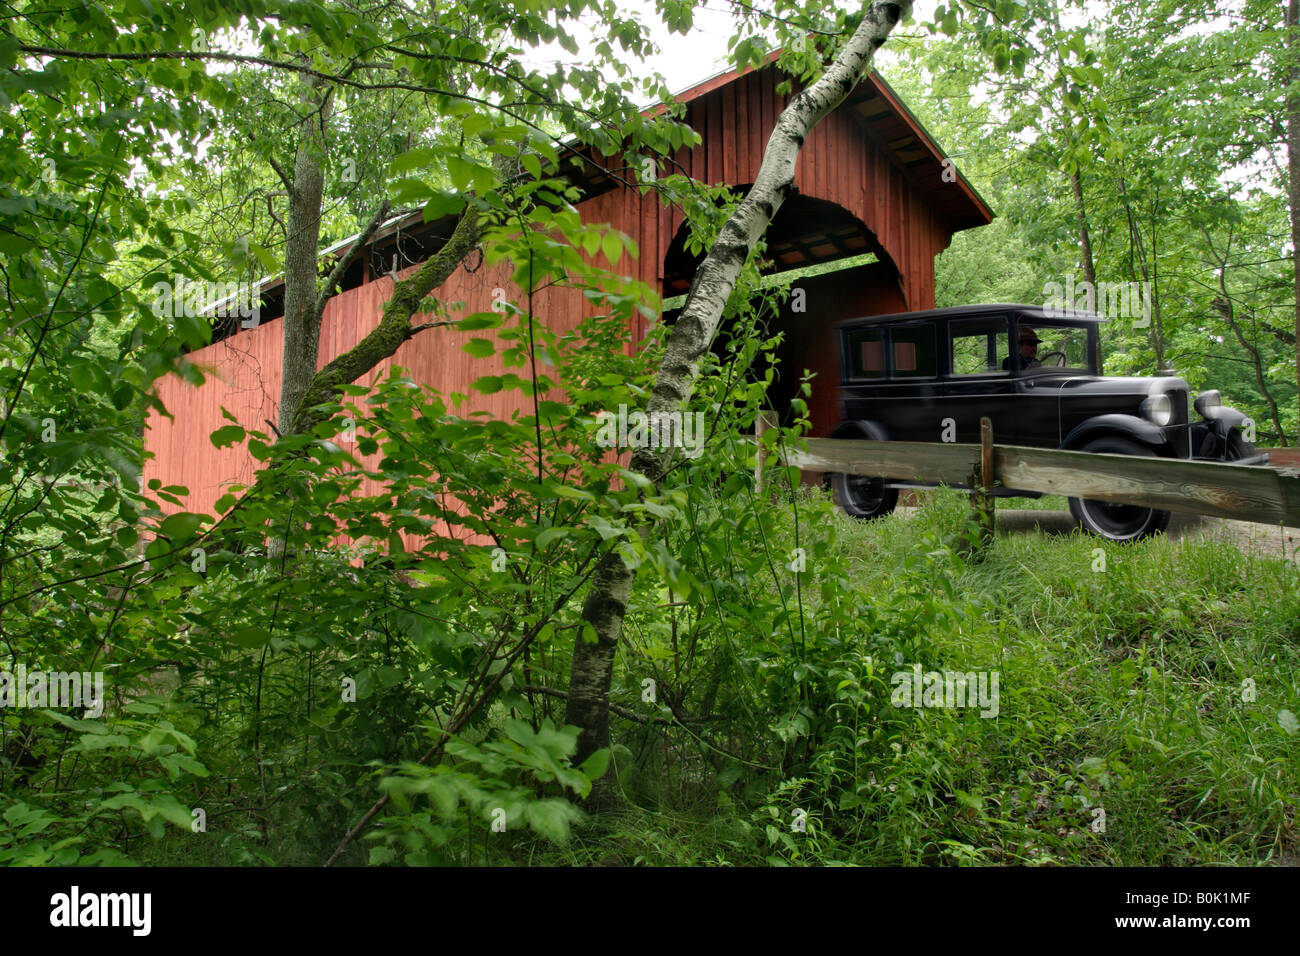 'Slaughter House Covered Bridge' Northfield VT - Stock Image